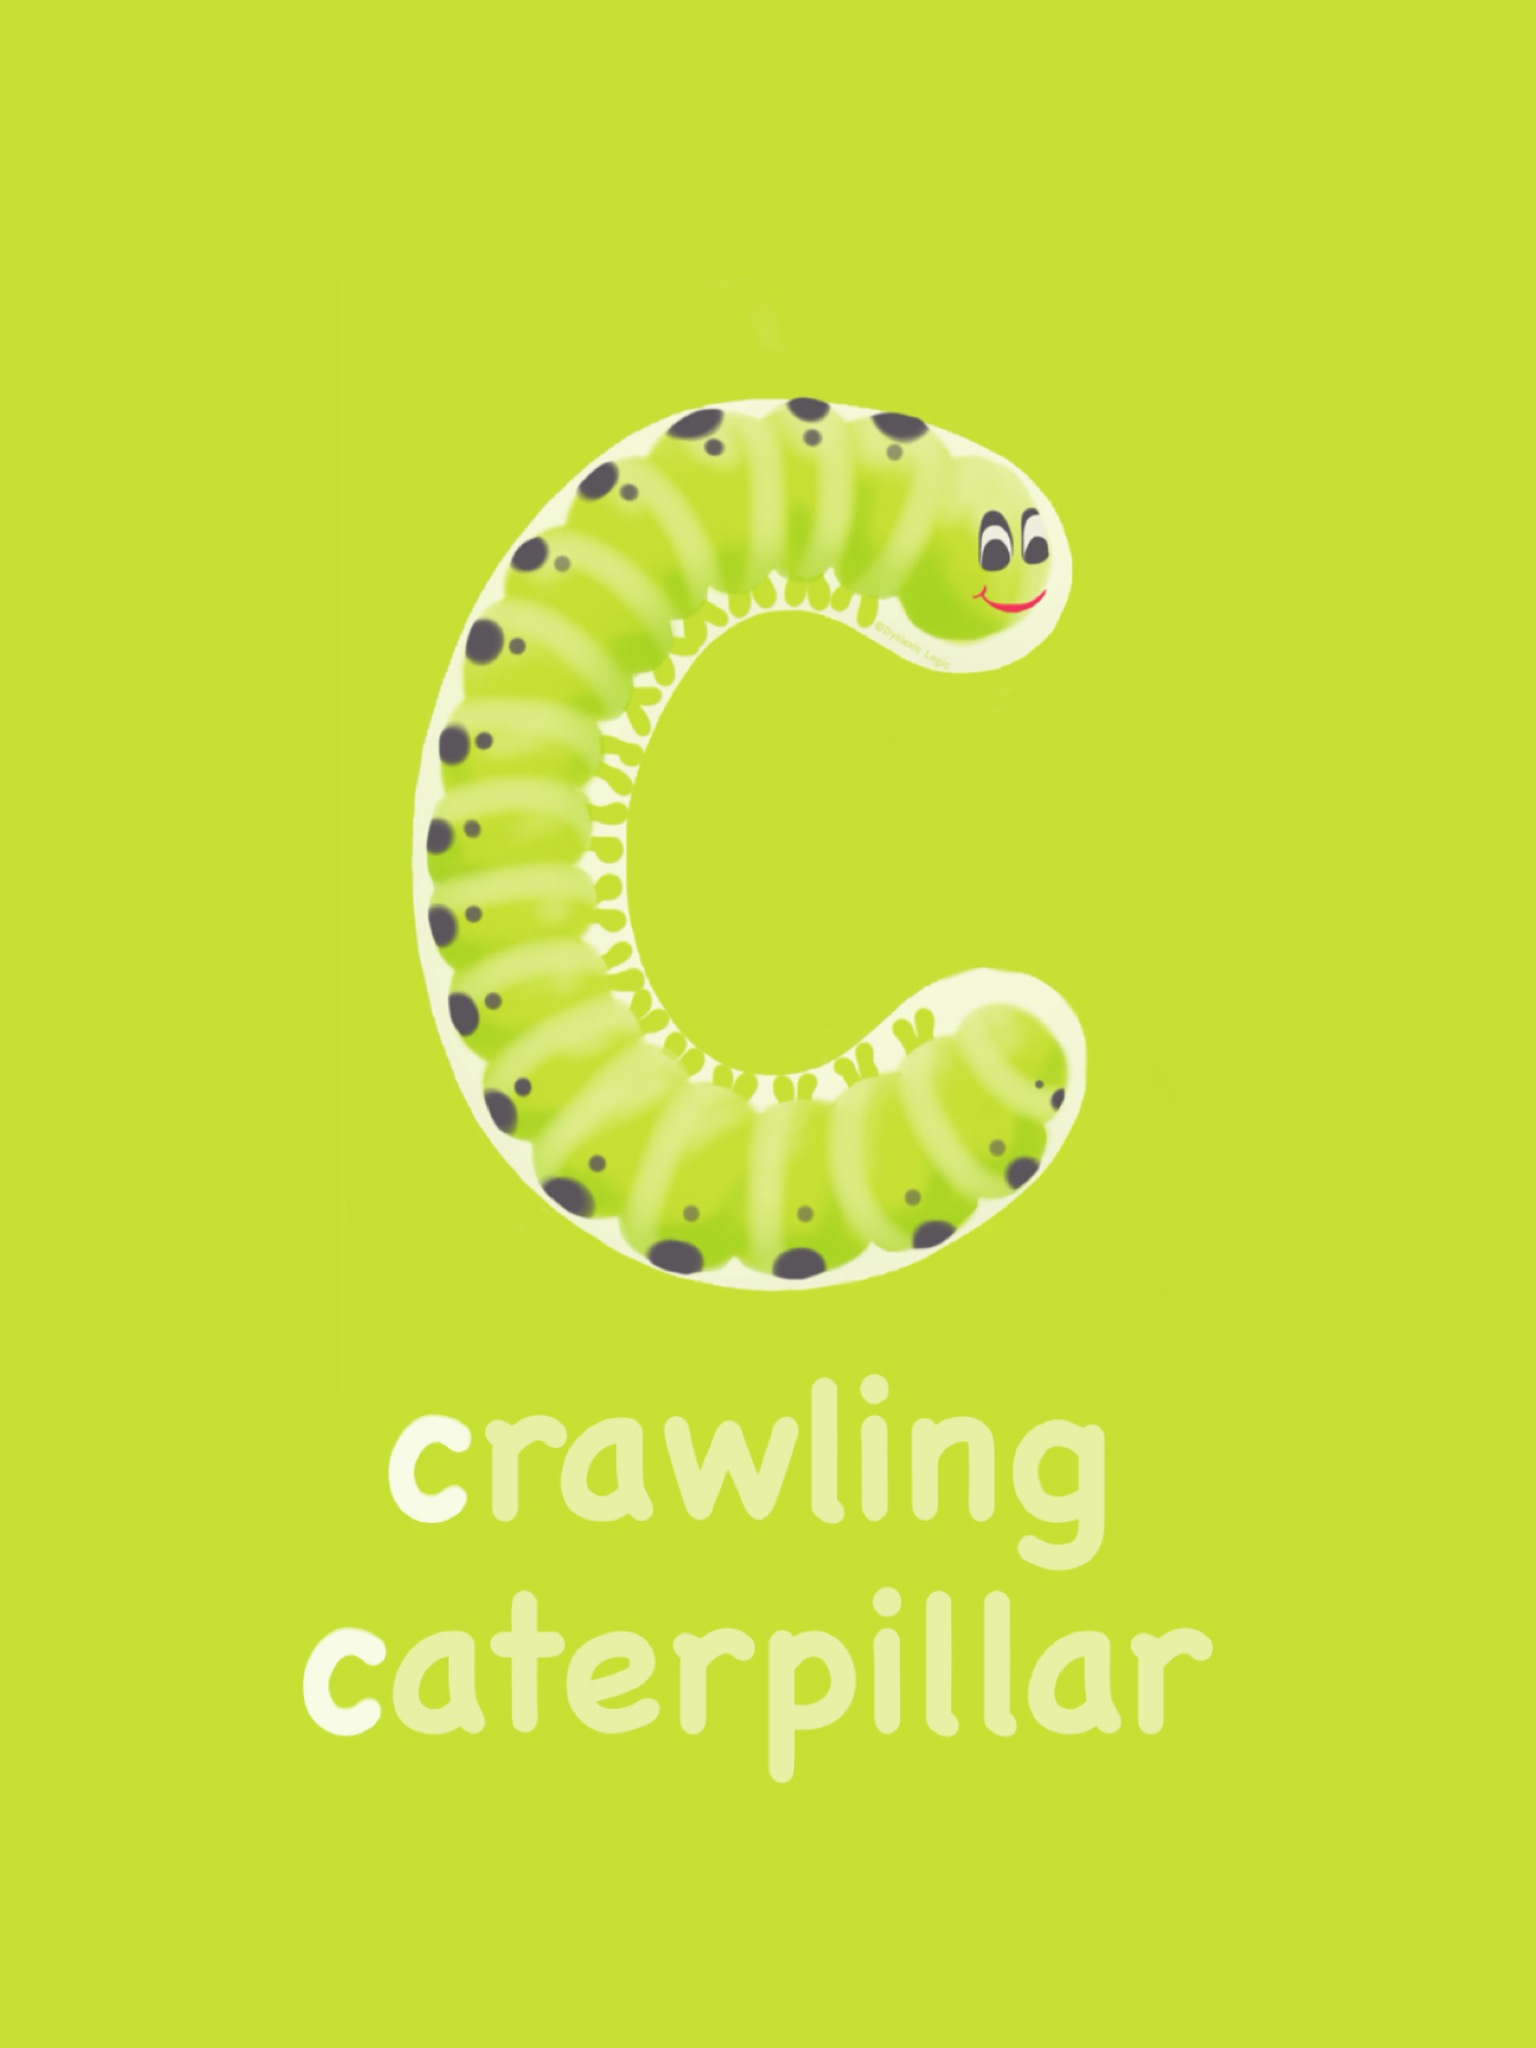 Letter C- Crawling Caterpillar